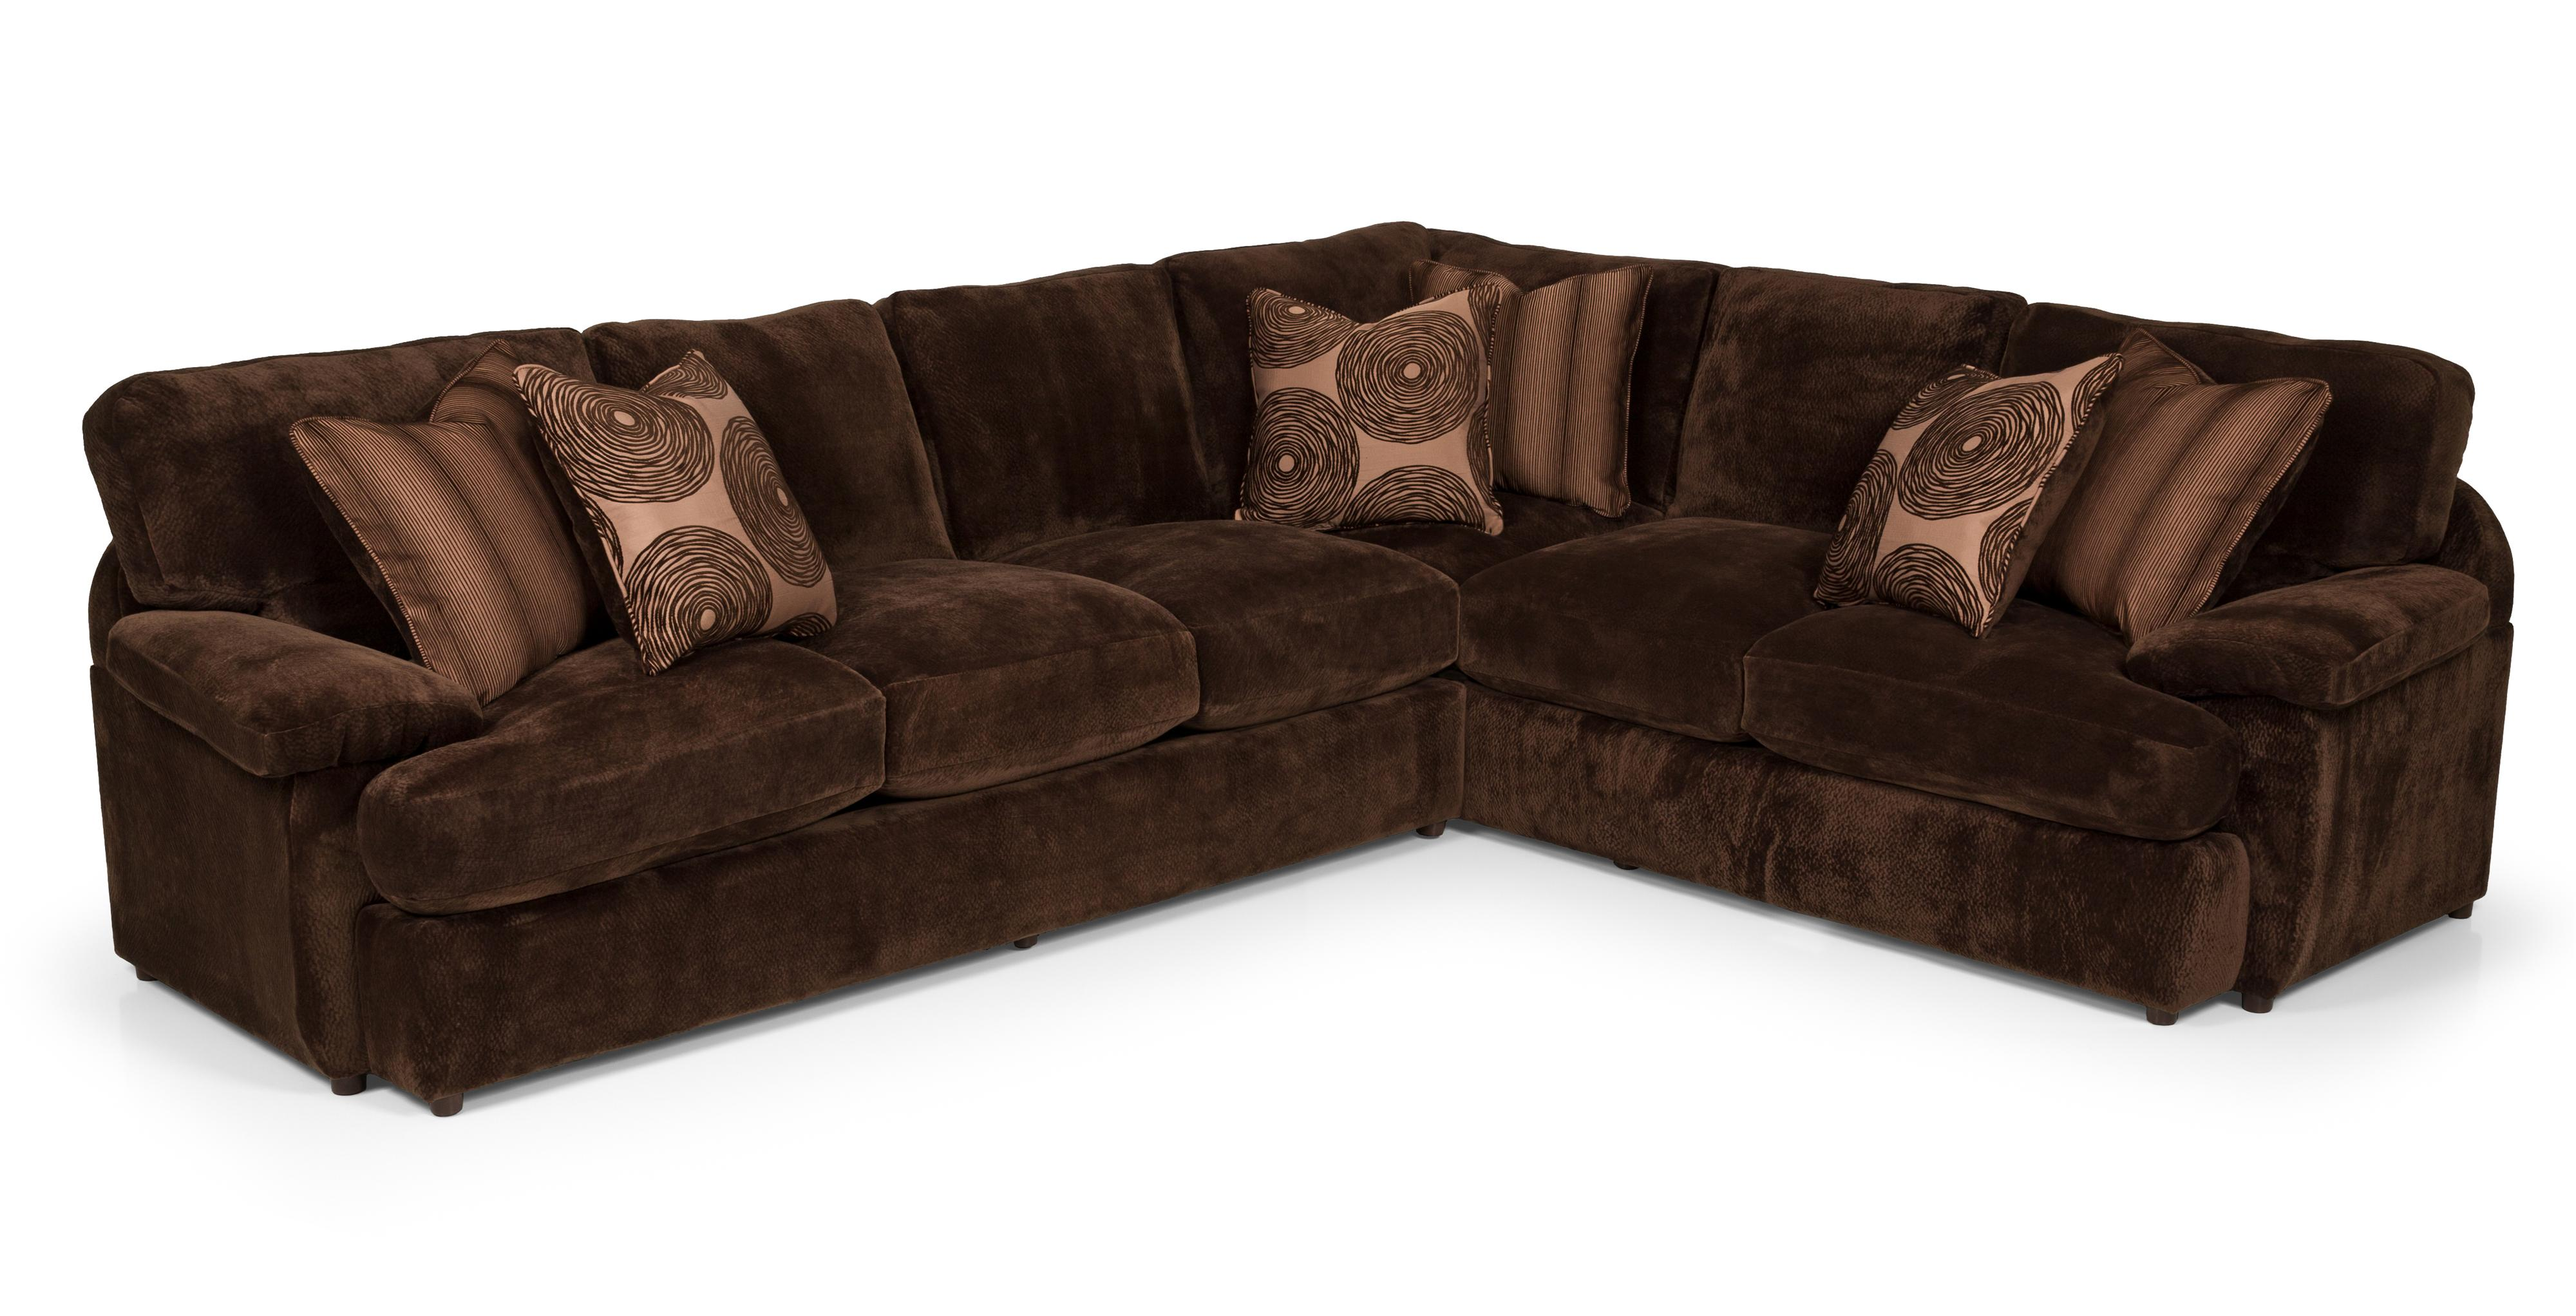 186 2 Pc Sectional Sofa w/ LAF Loveseat by Stanton at Wilson's Furniture